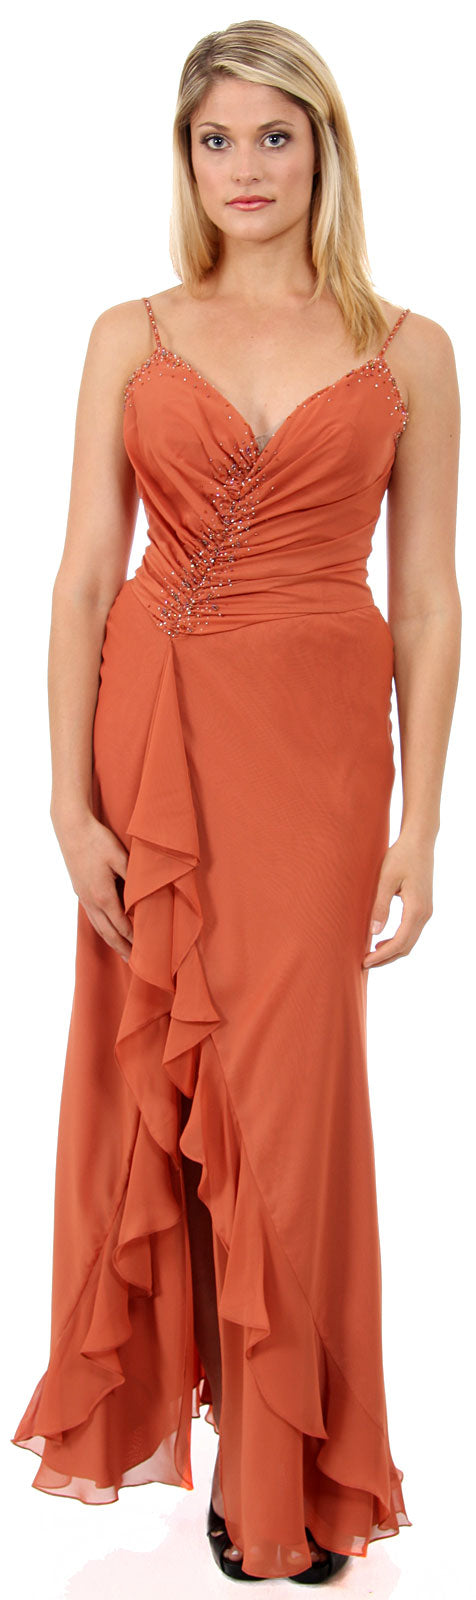 Main image of Shirred And Beaded Ruffled Long Prom Dress With Slit